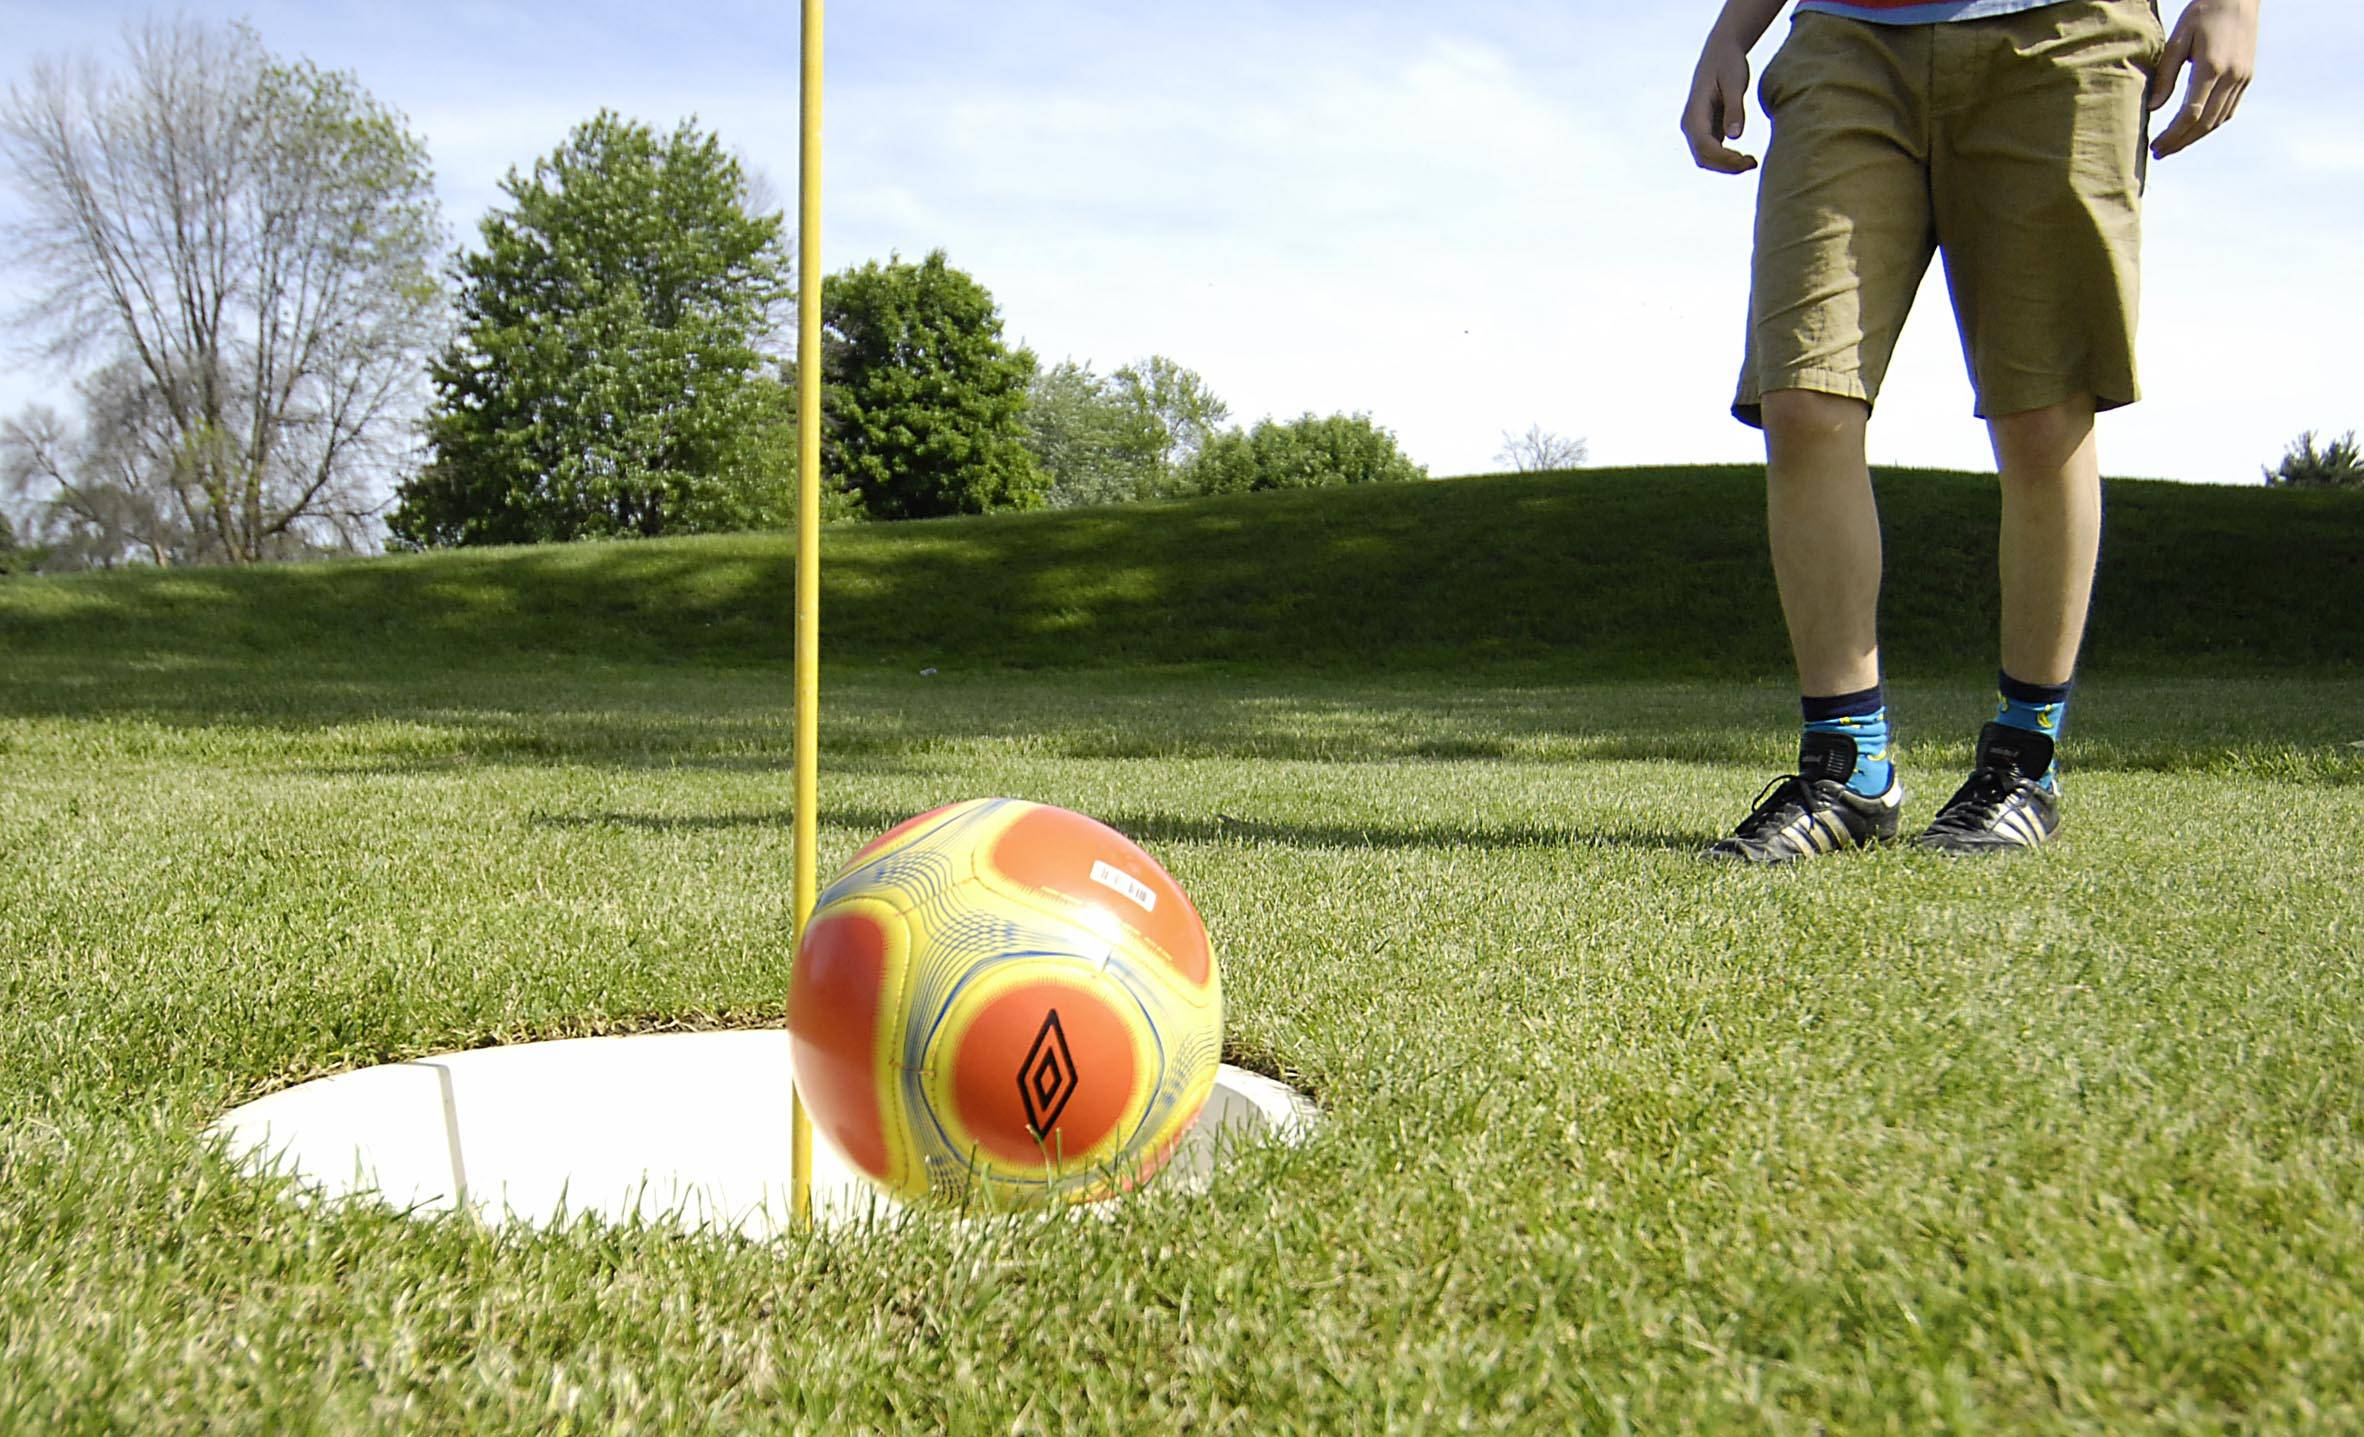 Bonnie Dundee Golf Club brings new hybrid sport of FootGolf to Fox Valley